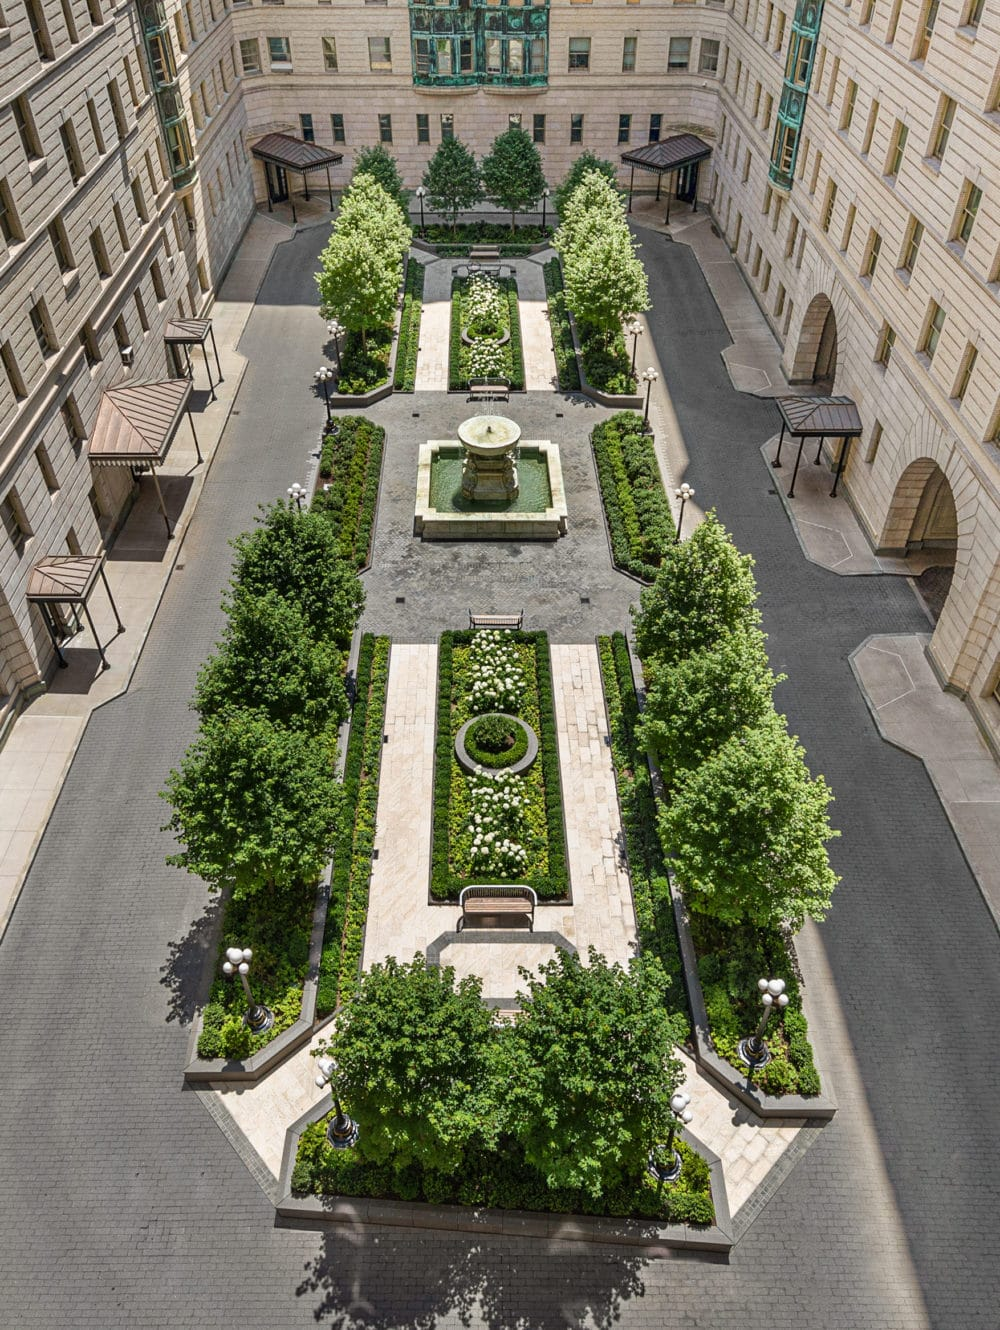 Aerial view of the courtyard at The Belnord apartments in New York. Large trees, raised planters and a water fountain.